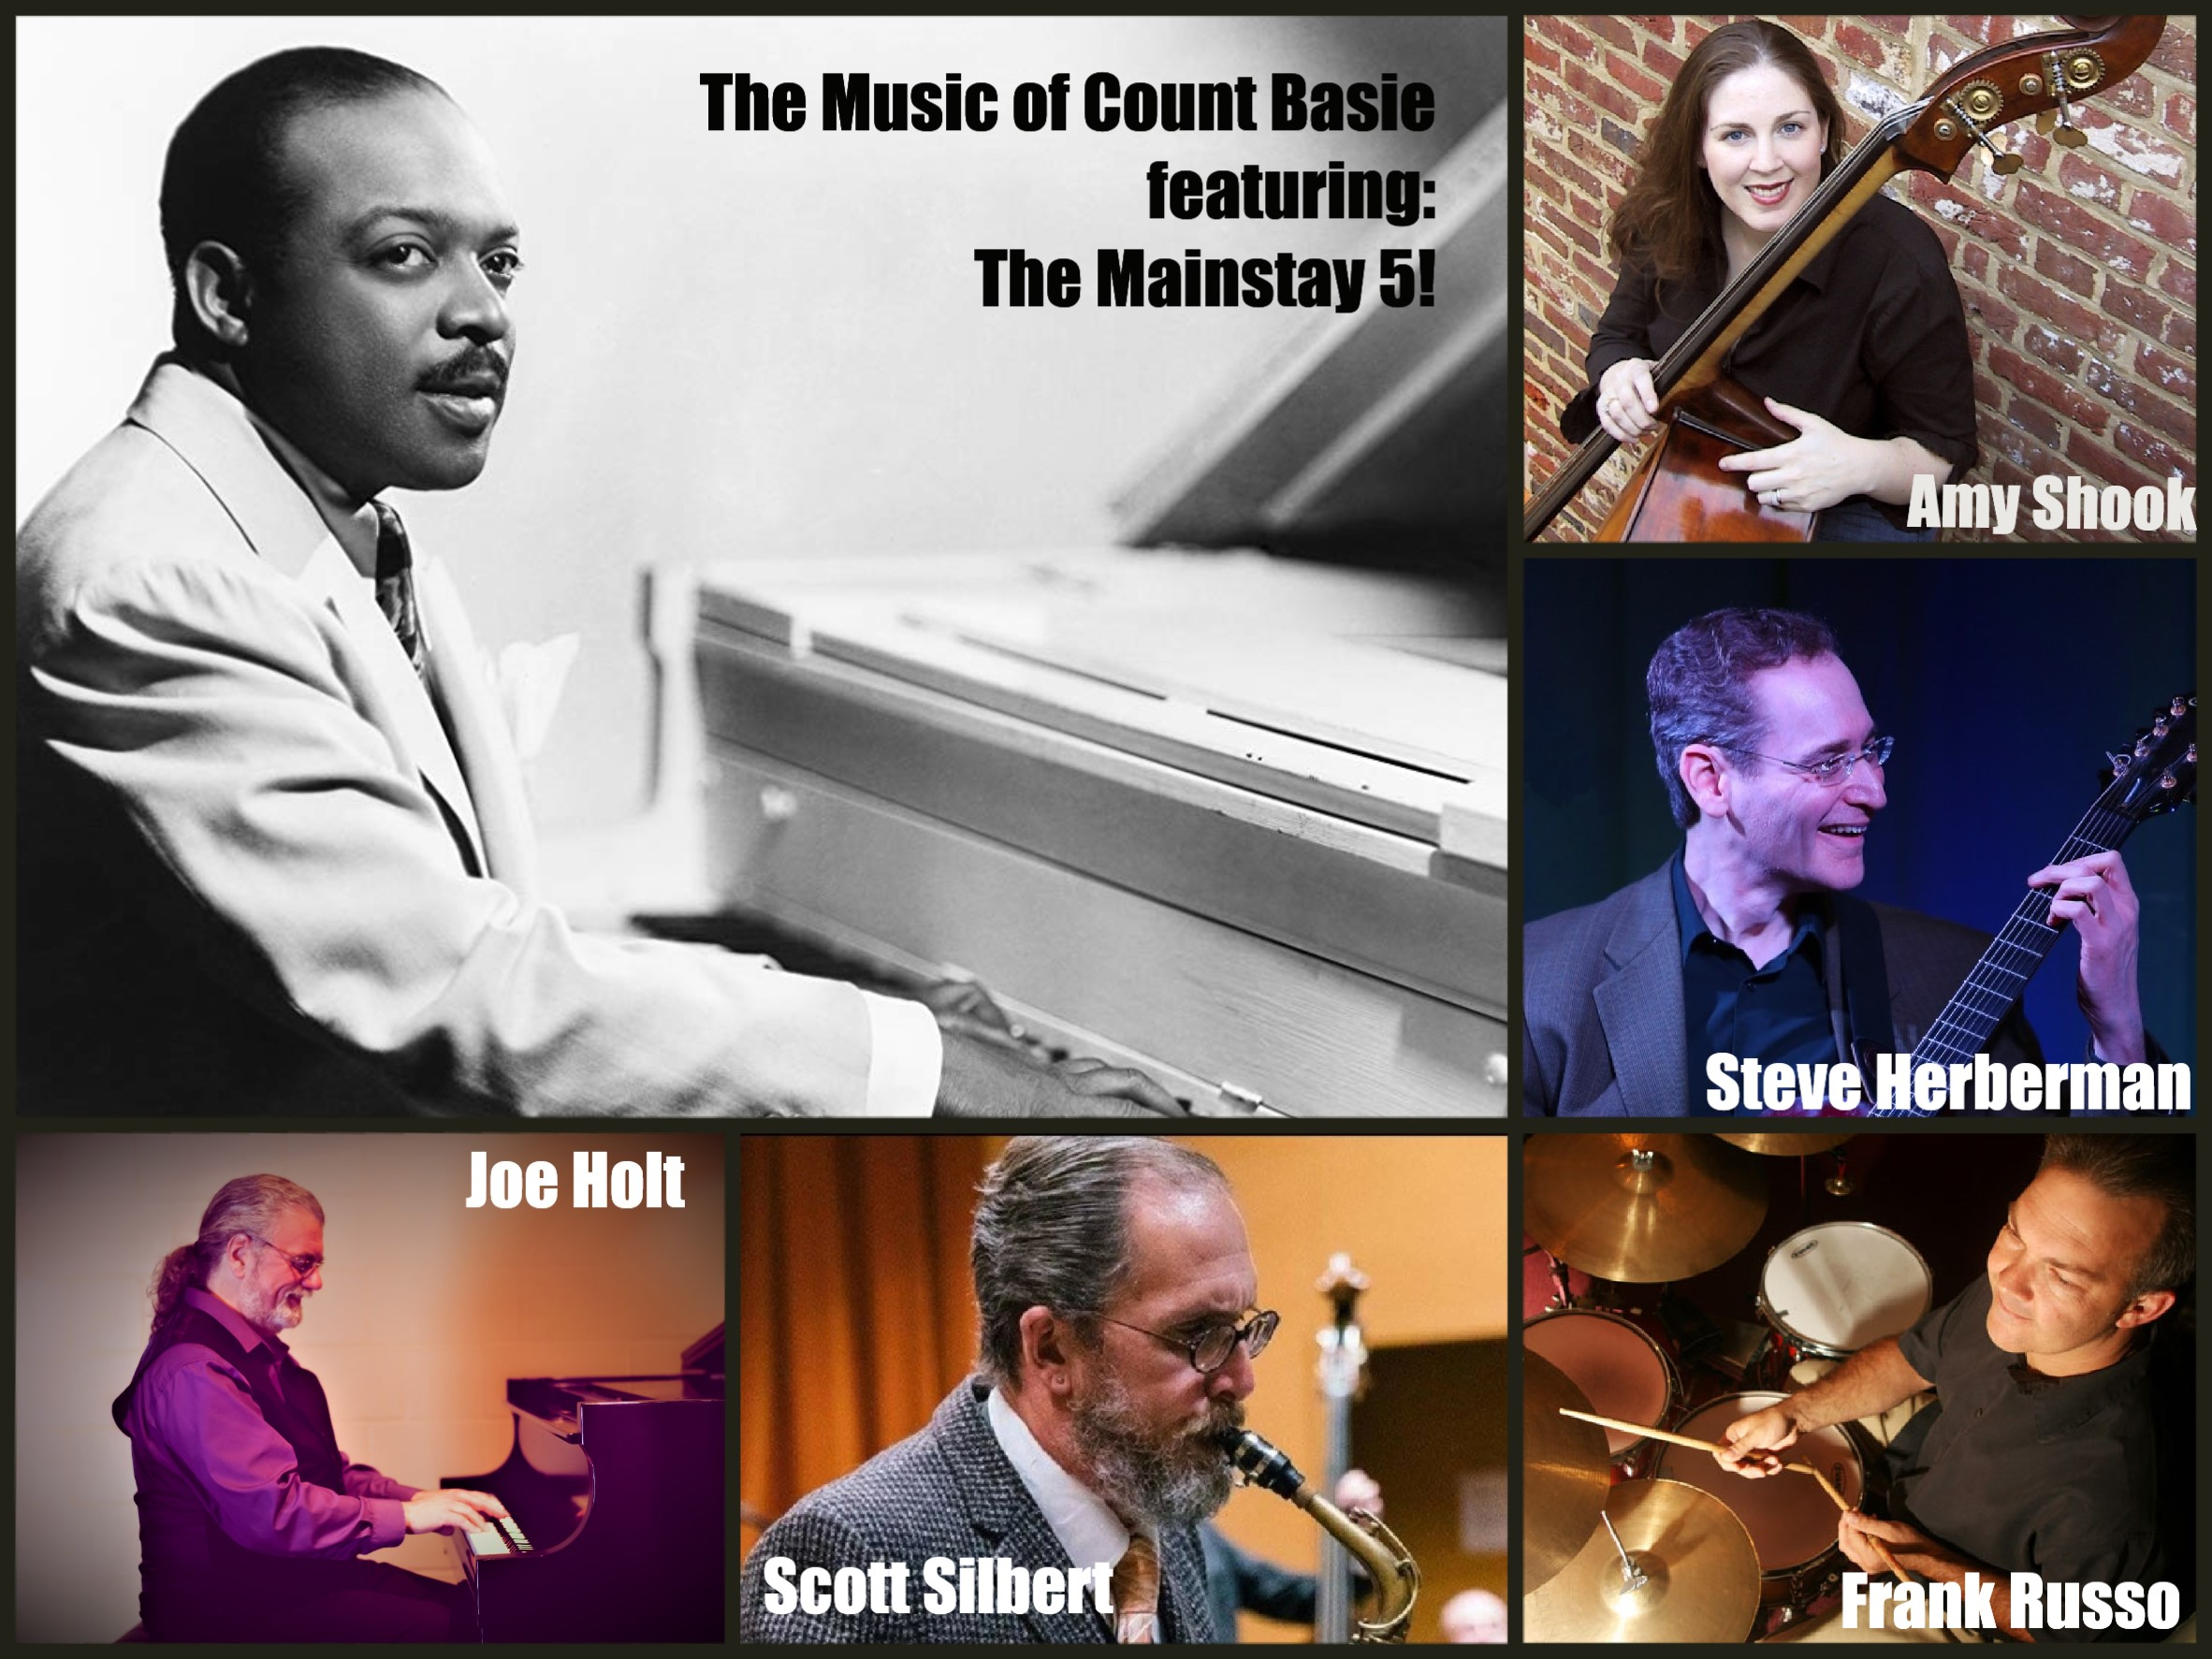 The Mainstay Monday 5 presenst a tribute to Count Basie